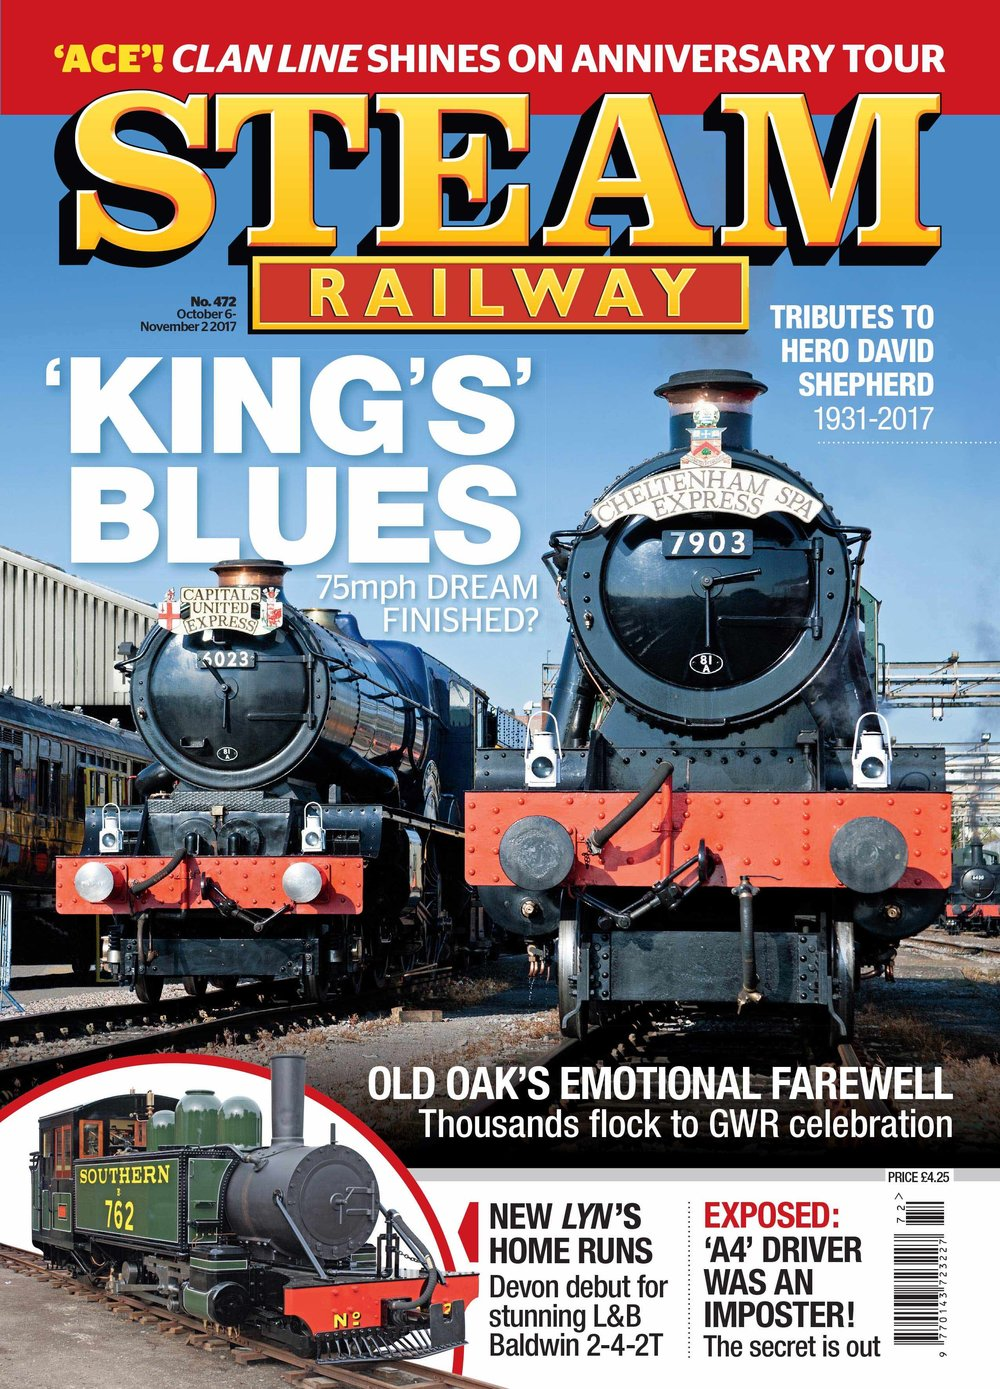 Steam Railway SR472 - On Sale Now!